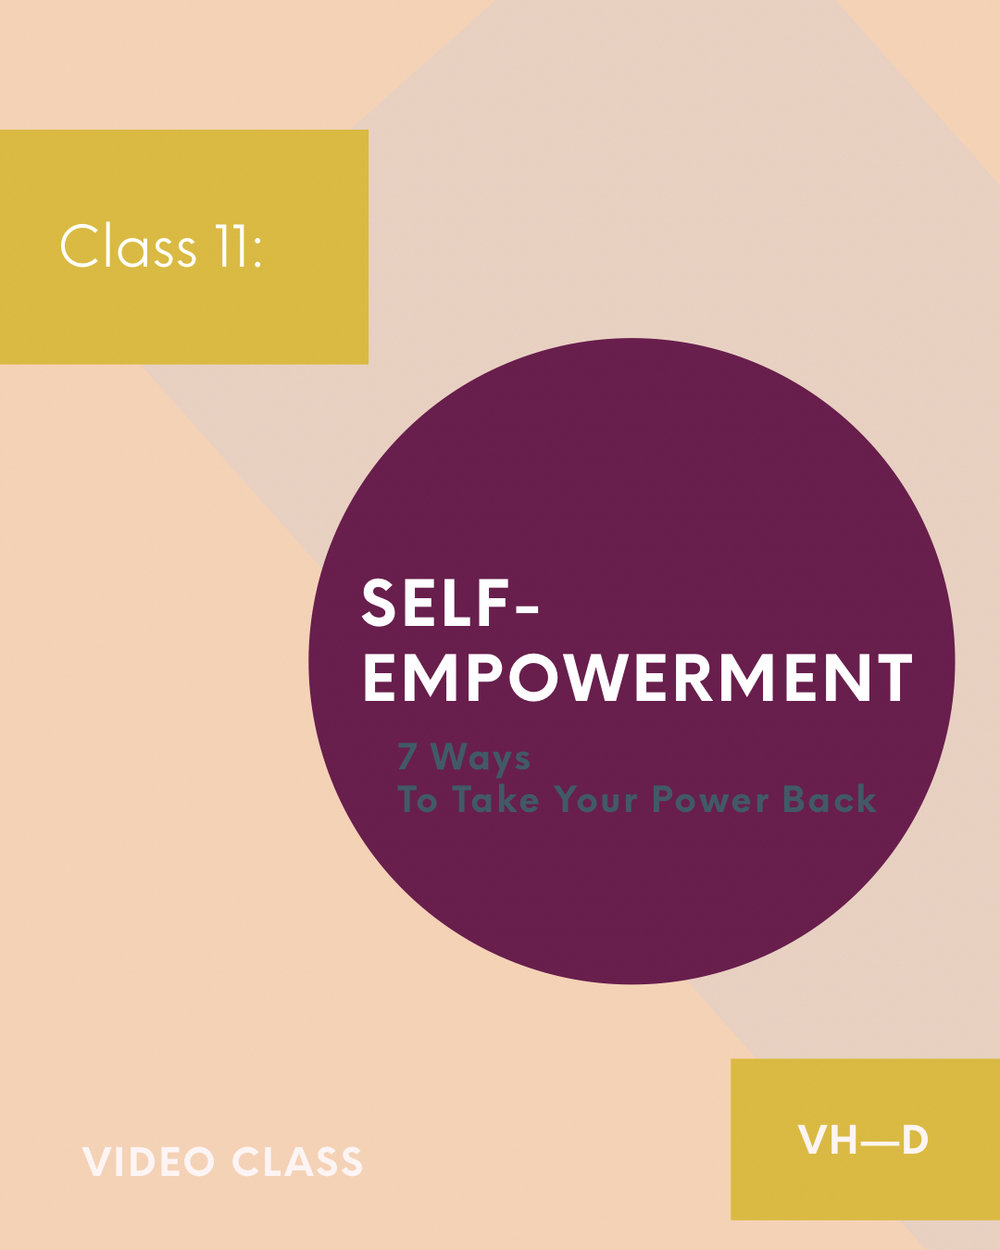 Self-Empowerment - 7 Essentials Ways to Take Your Power BackEmpowerment allows you to go higher and beyond where you are now!Are you living an empowered life?Dis-empowerment can cause negative thoughts, fears, doubts, pain, insecurities, circumstances, lower vibrations, and unhealthy subconscious-beliefs, to consume our lives, to keep us from living a fulfilling life, to keep us from reaching out higher potential, and from thriving in life; if we allow them to.In class 11, we'll cover 7 essentials ways to put Self-Empowerment into practice and full-effect.Let's thrive in, and through life!